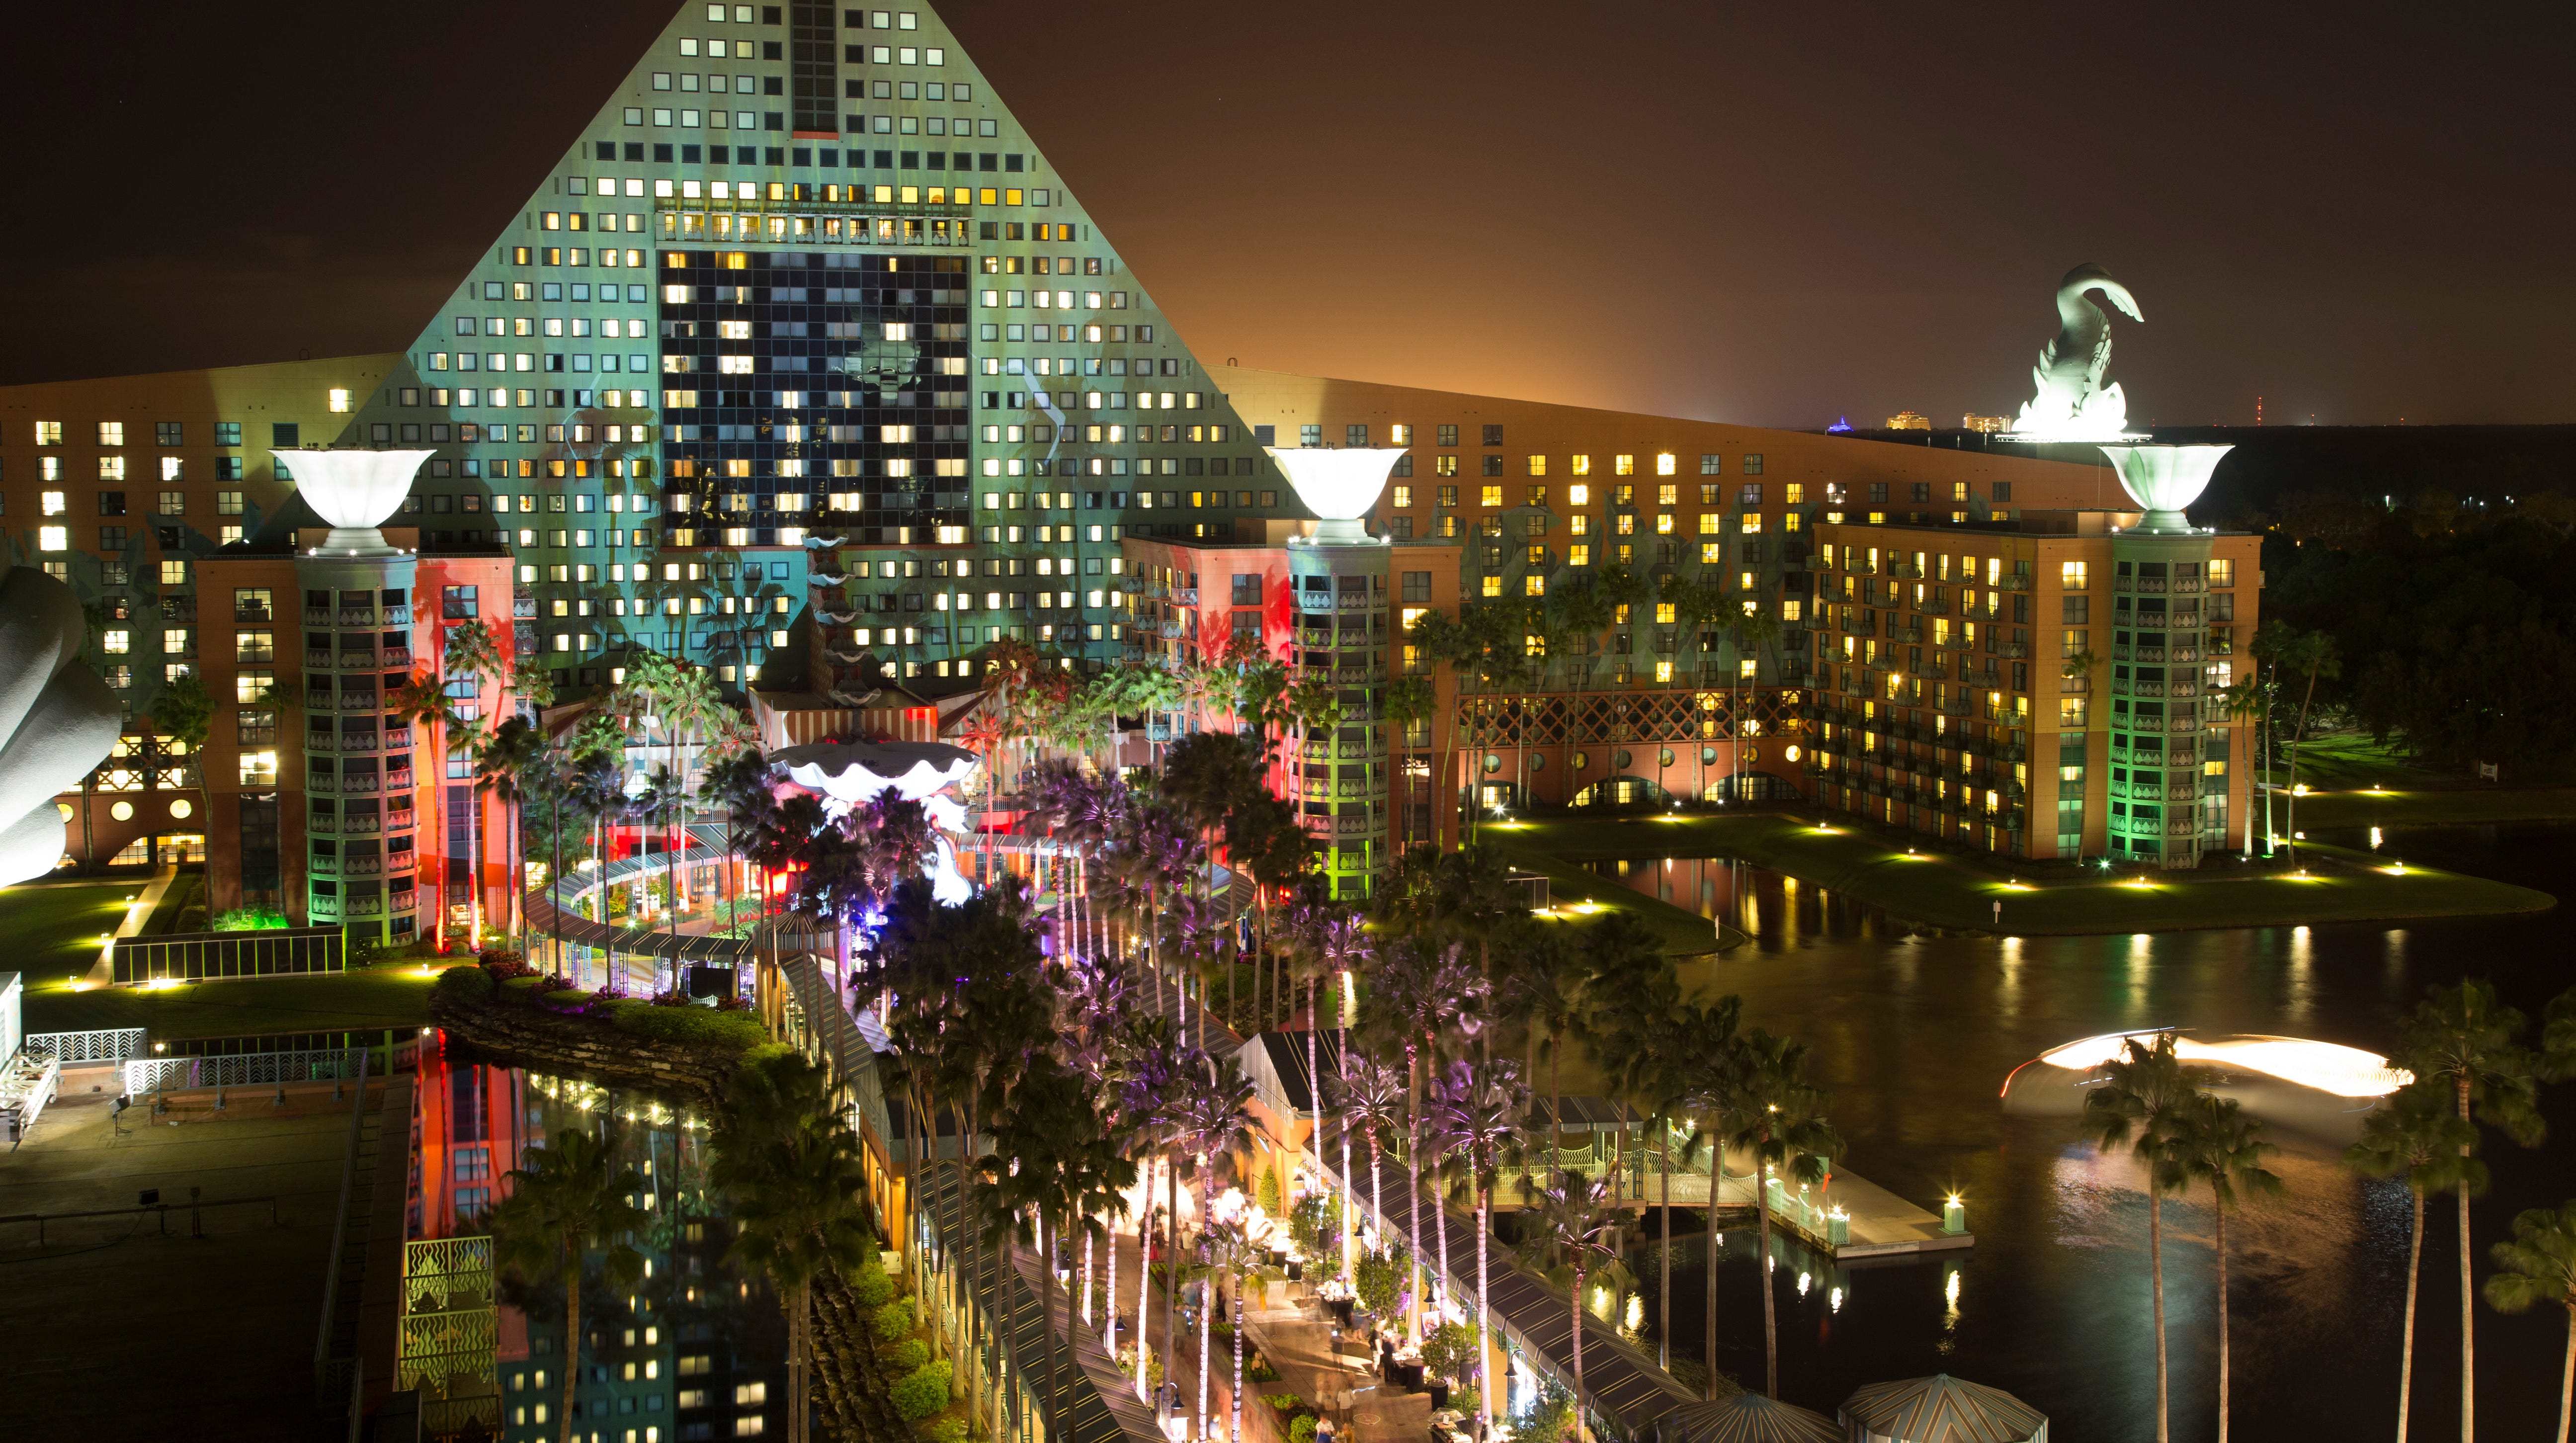 Tickets are on sale for the food, wine and beer extravaganza known as the Walt Disney World Swan and Dolphin's Food & Wine Classic.